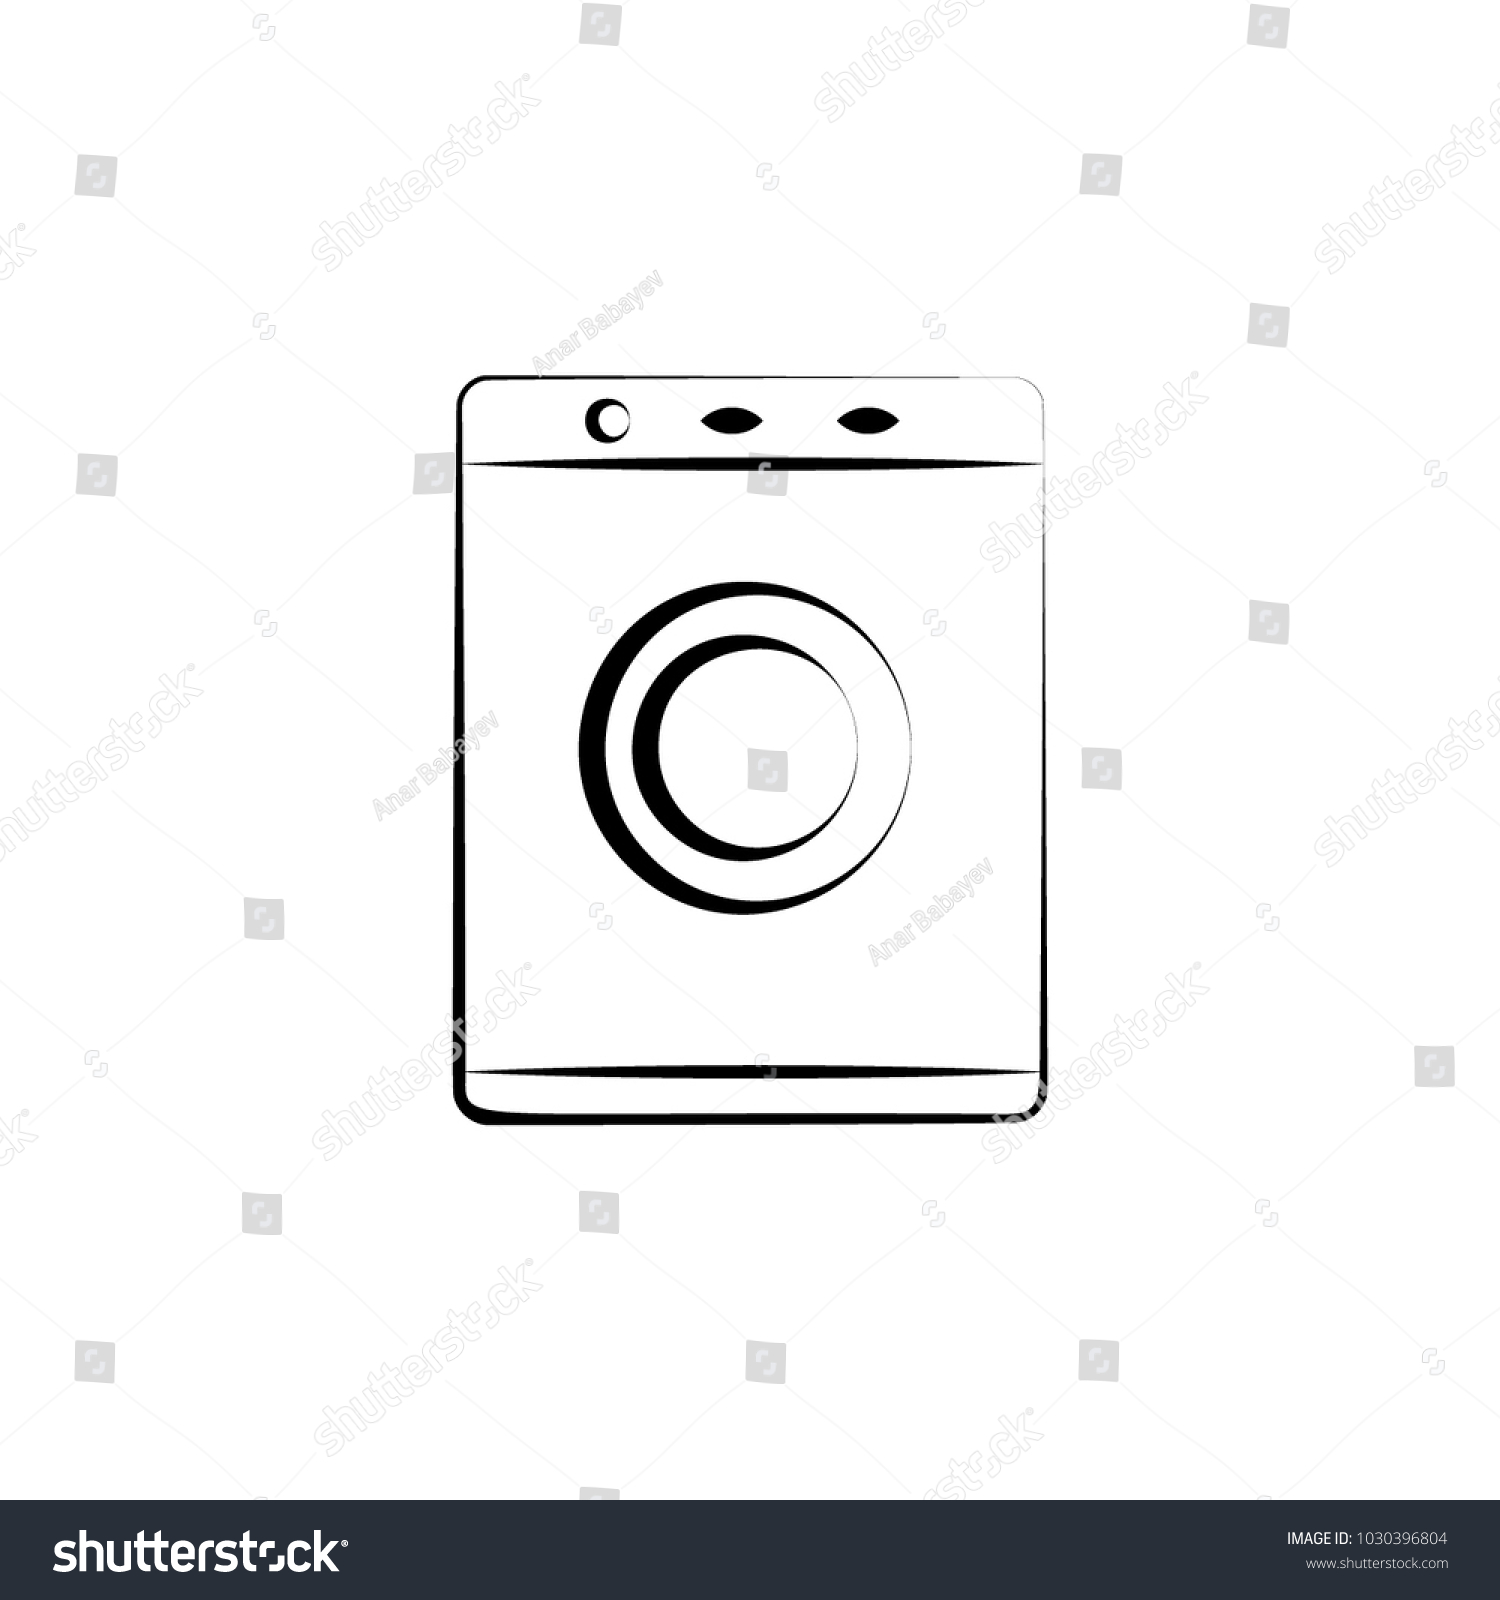 Washing machine icon element electrical devices stock vector element of electrical devices icon premium quality graphic design signs biocorpaavc Images